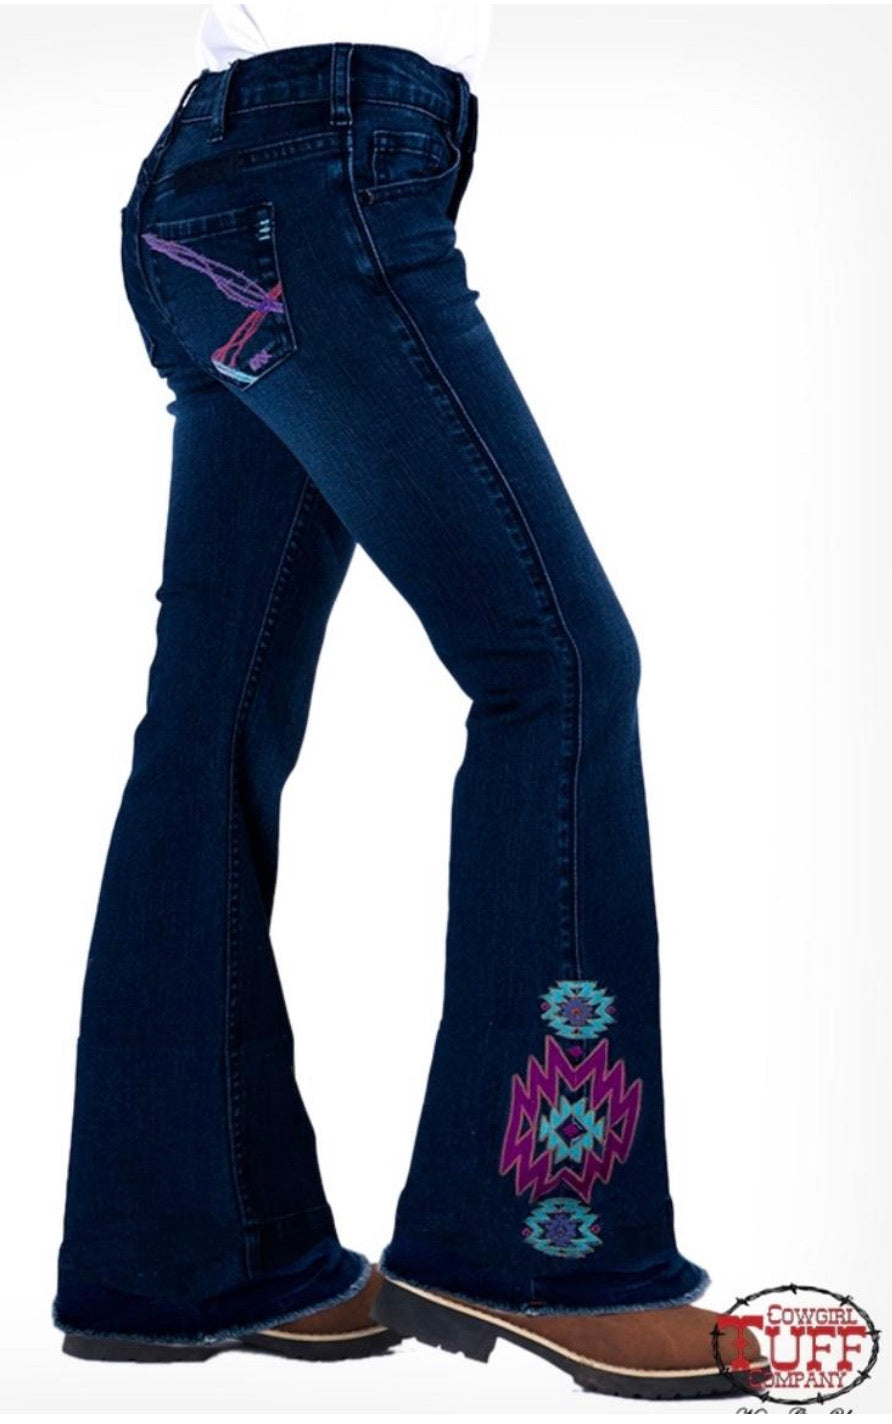 Cowgirl Tuff Girl's Aztec Rocks Jeans